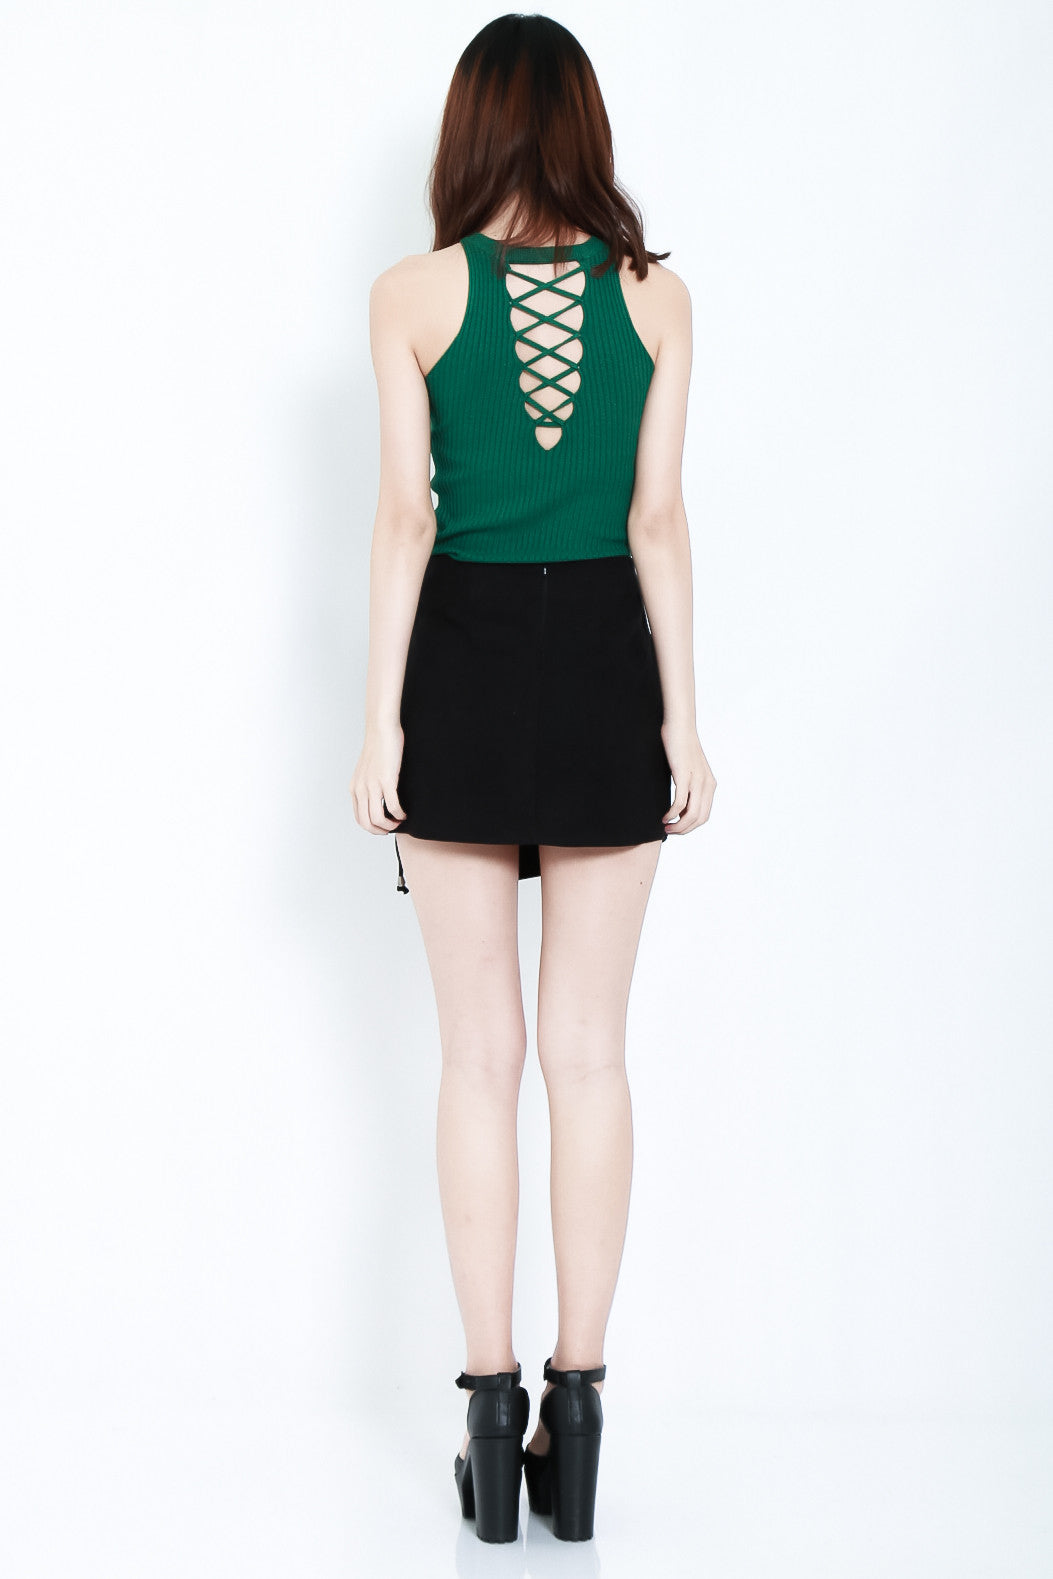 RIBBED REVERSIBLE LACE TOP IN FOREST